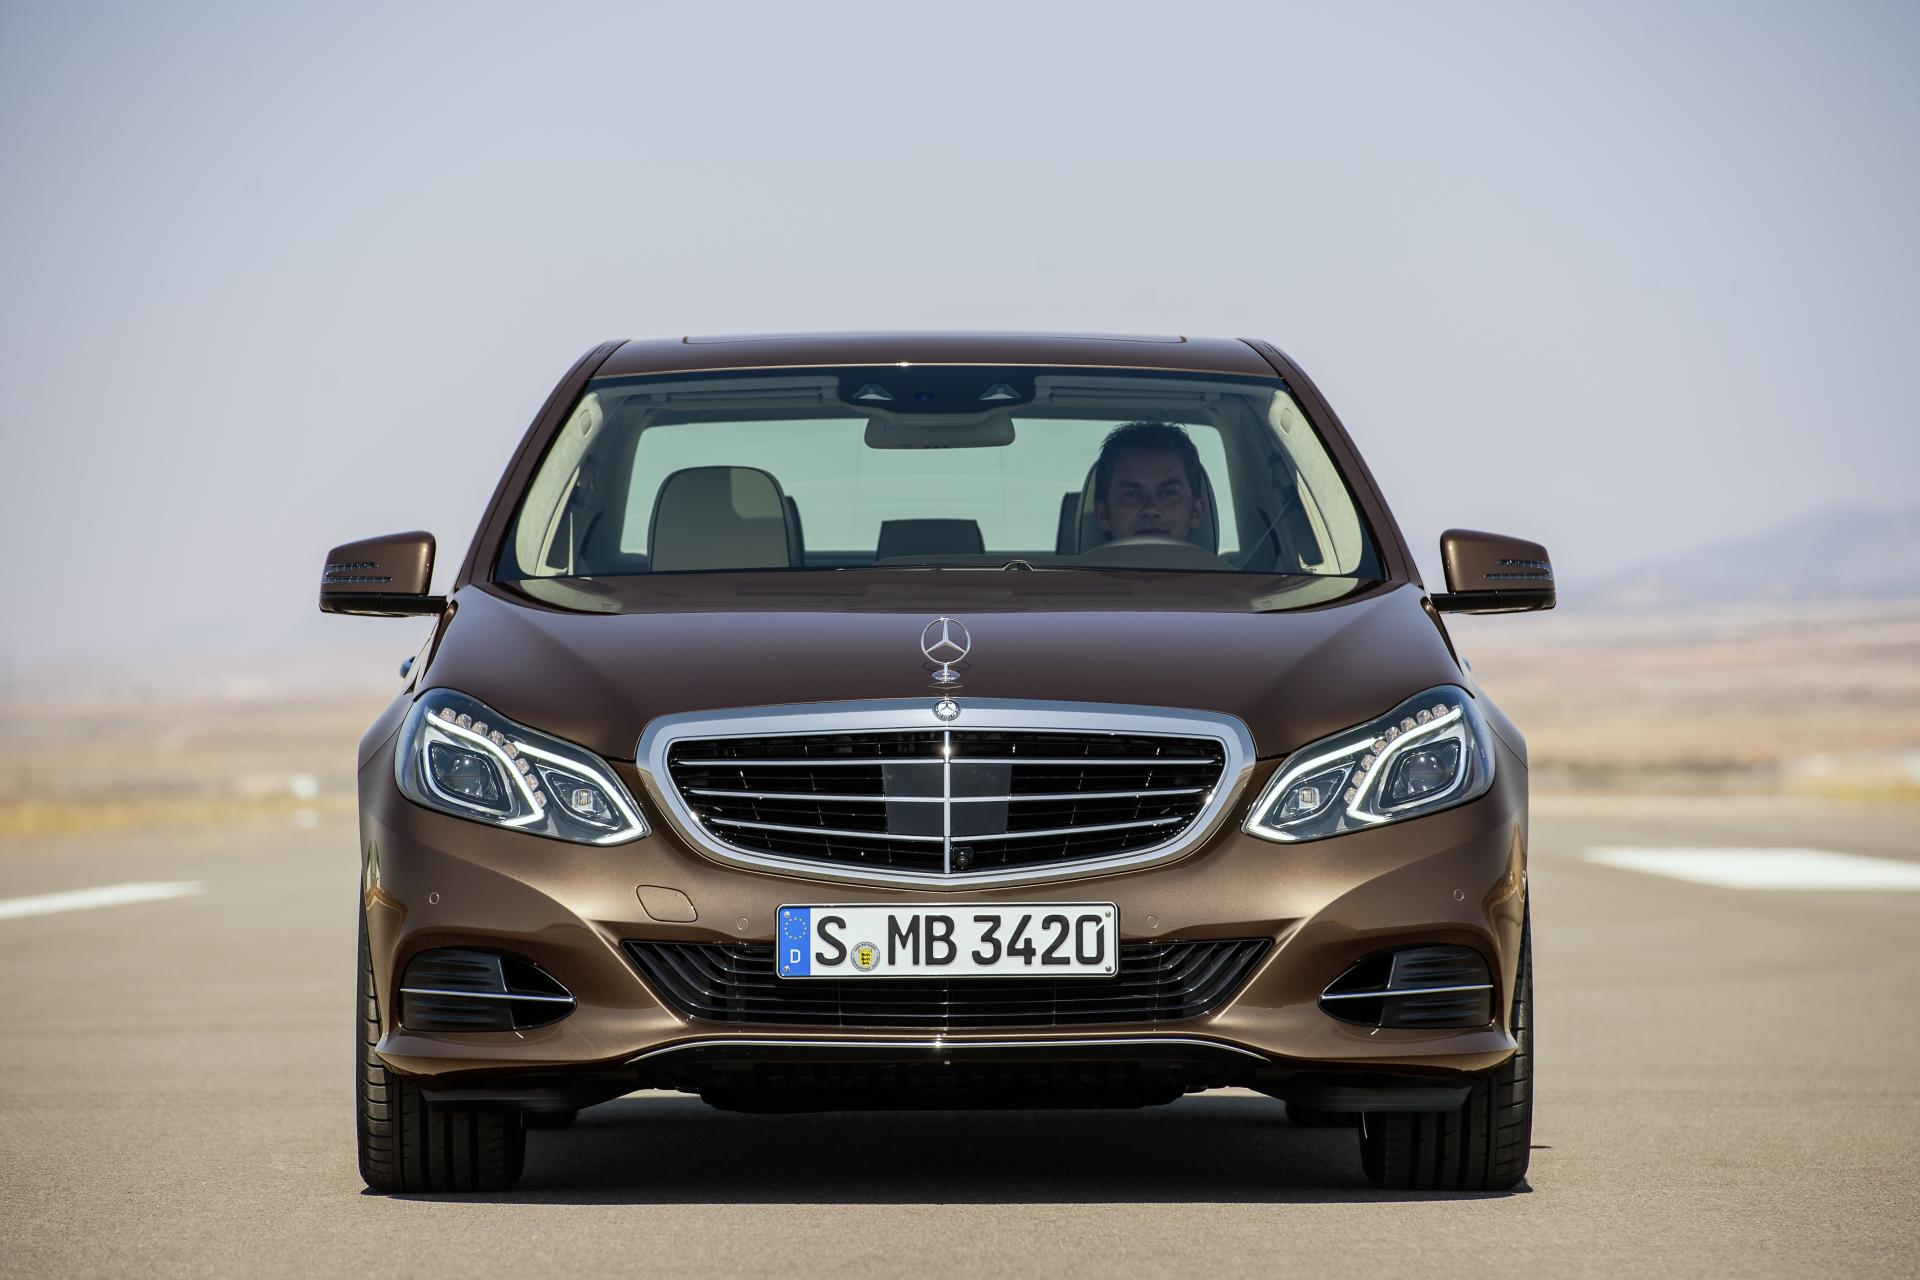 2014 mercedes benz e class news and information for How much is a 2014 mercedes benz s550